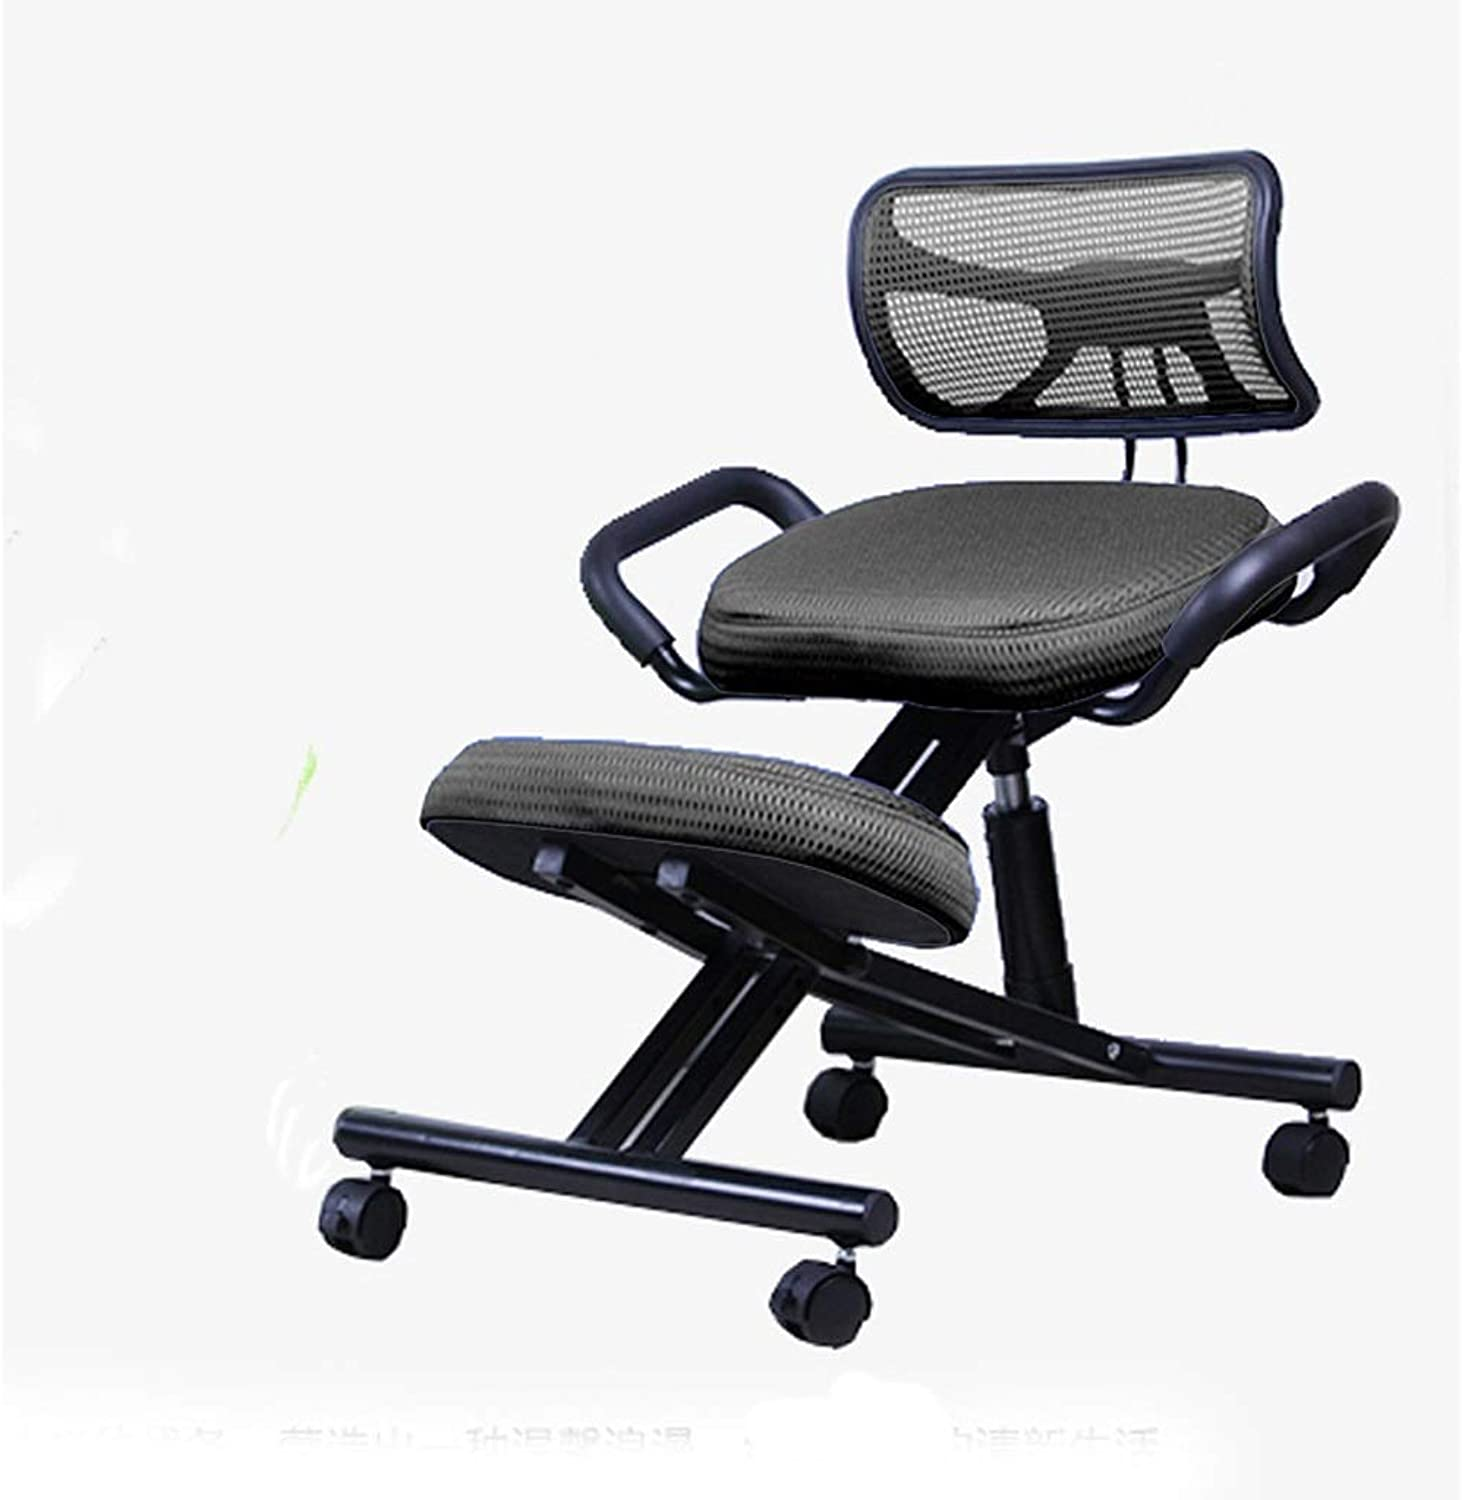 Ergonomic Posture Knee Desk Stool with Back, Kneeling Chair for Office, Adjustable Work Chair with Handles, Meditation Seat, Breathable Fabric, Kneeling Pad with Thick Memory Foam Cushion